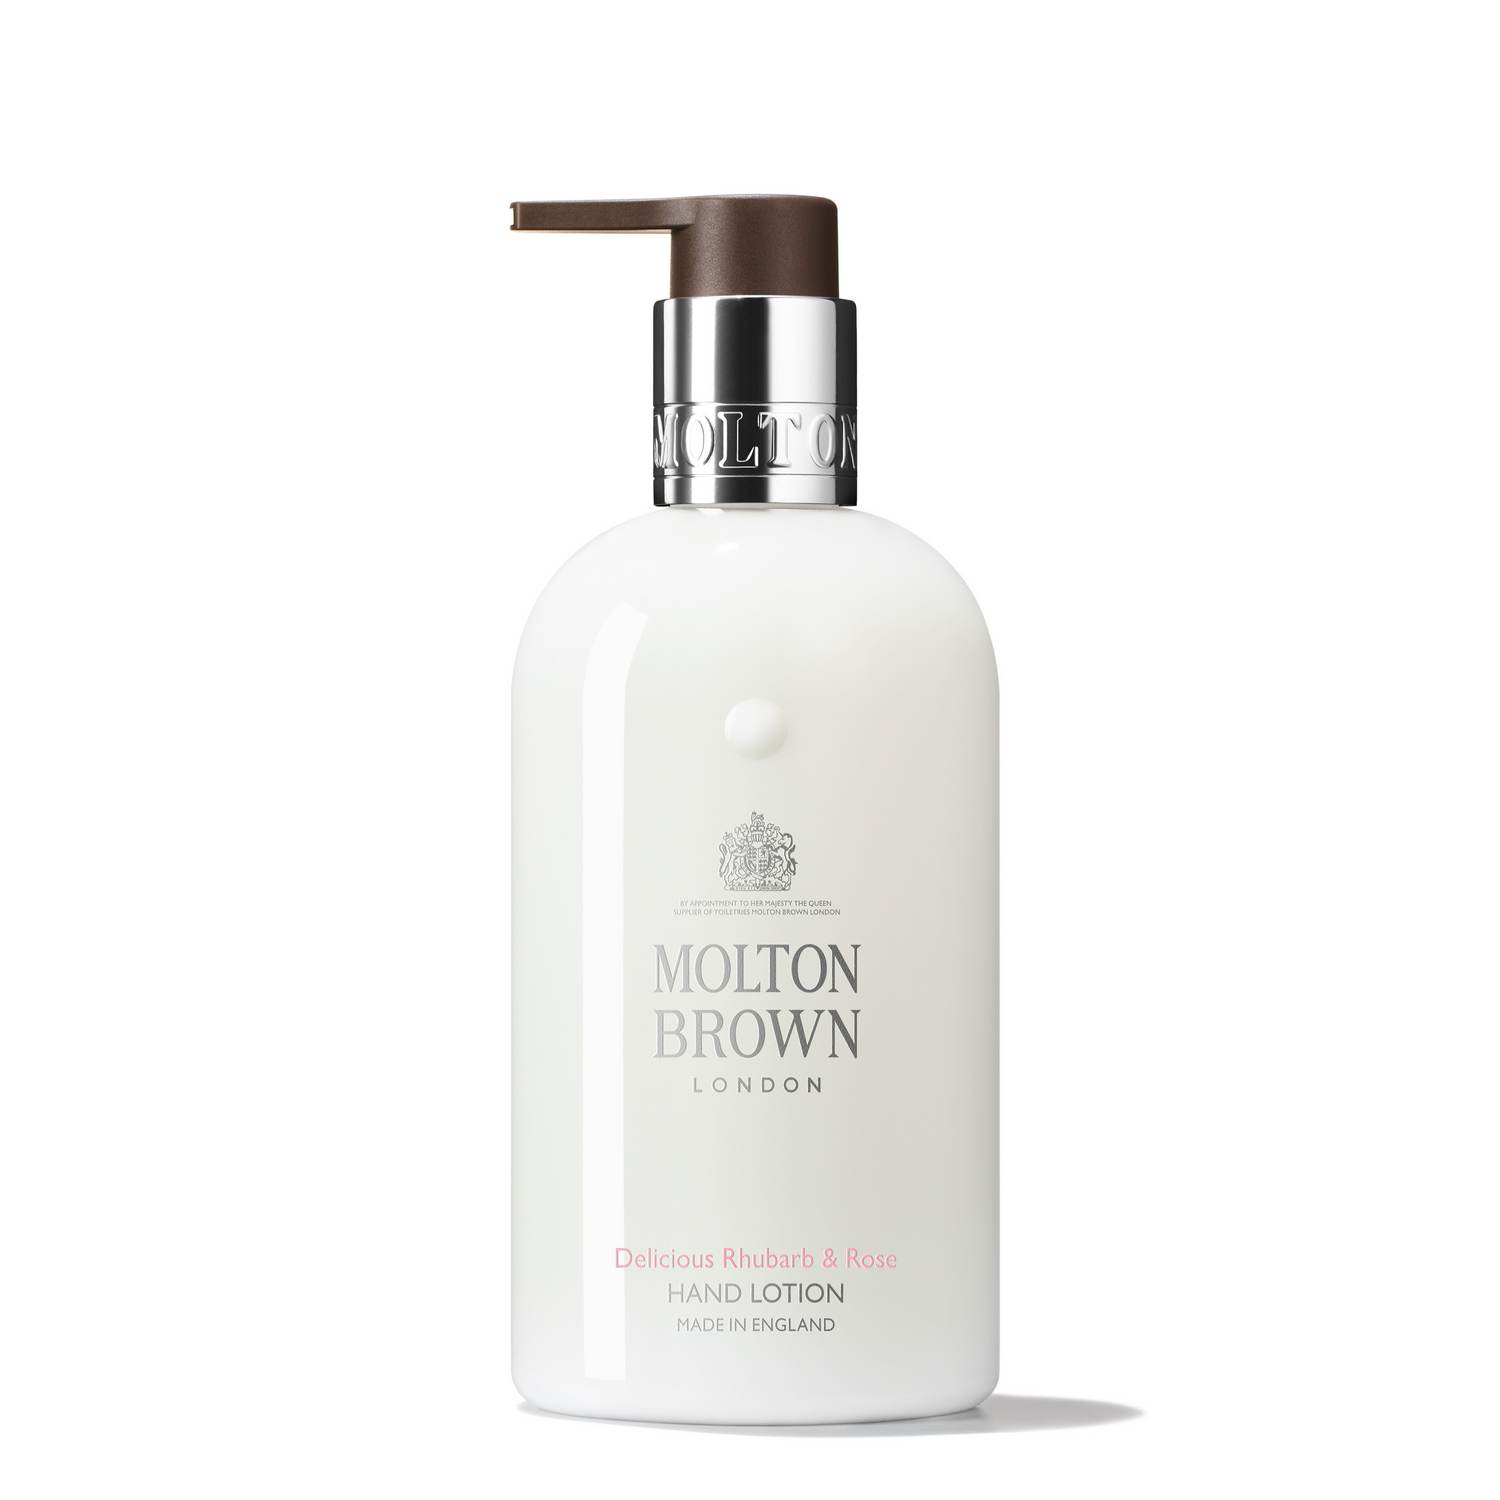 Delicious Rhubarb & Rose Hand Lotion by Molton Brown